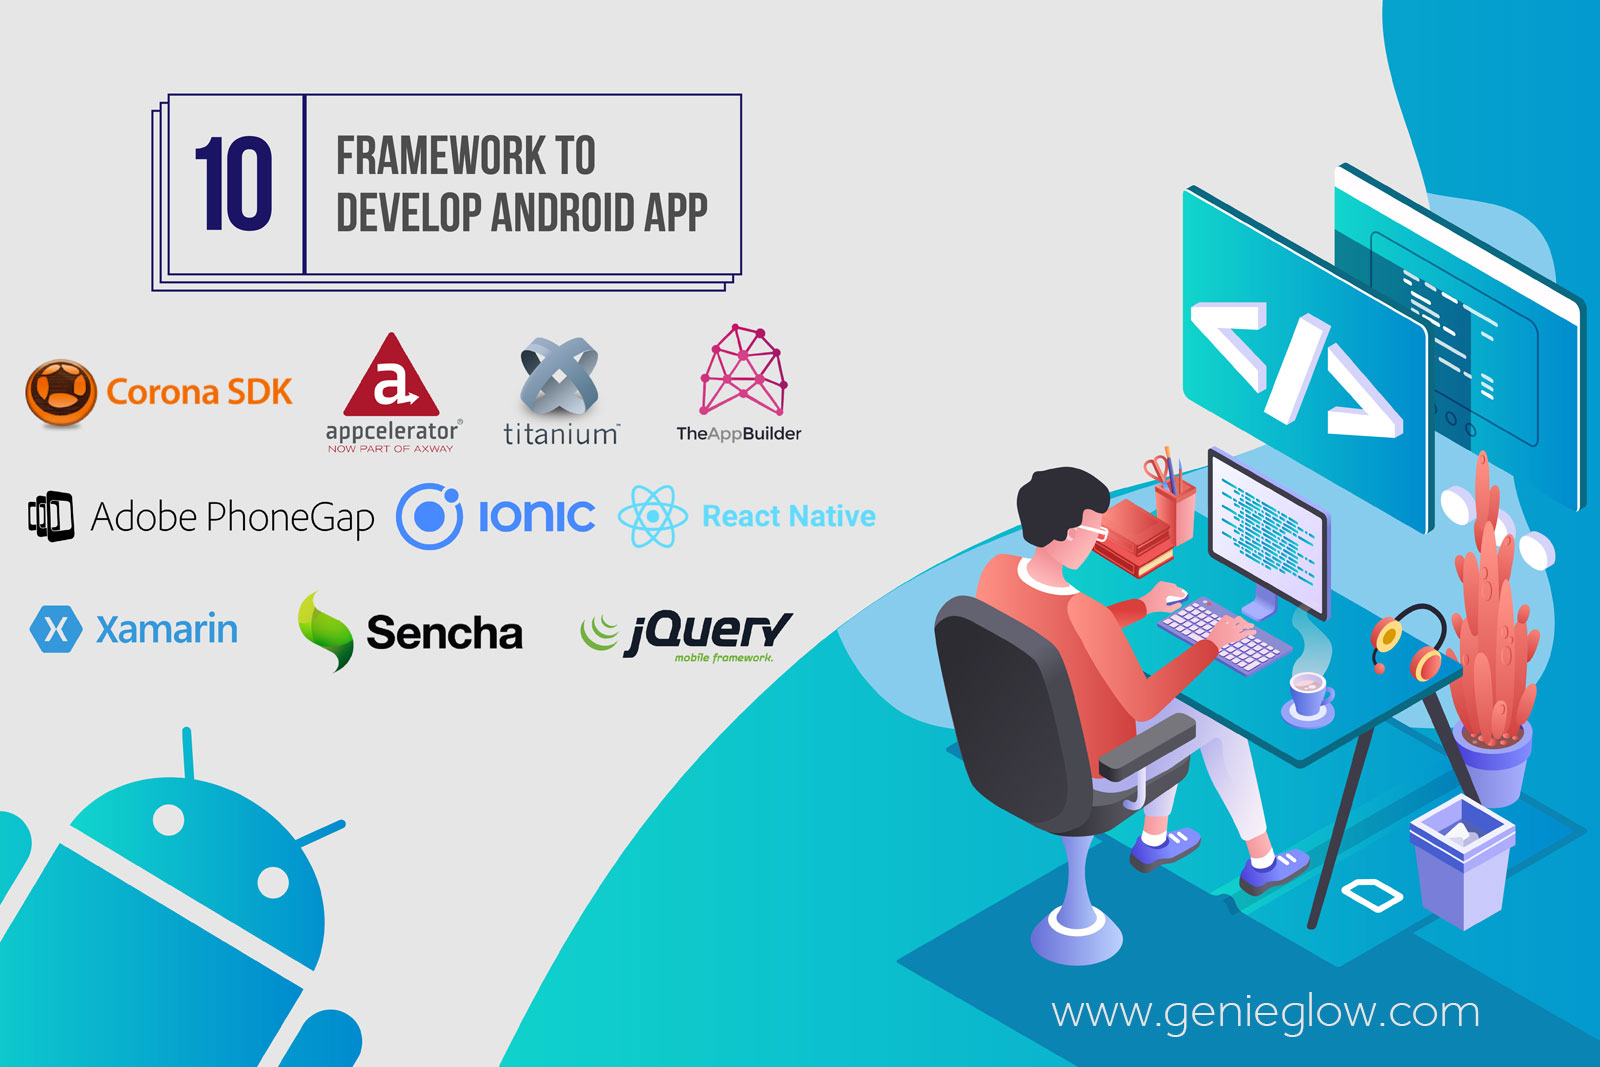 Frameworks for Android App Development in 2019